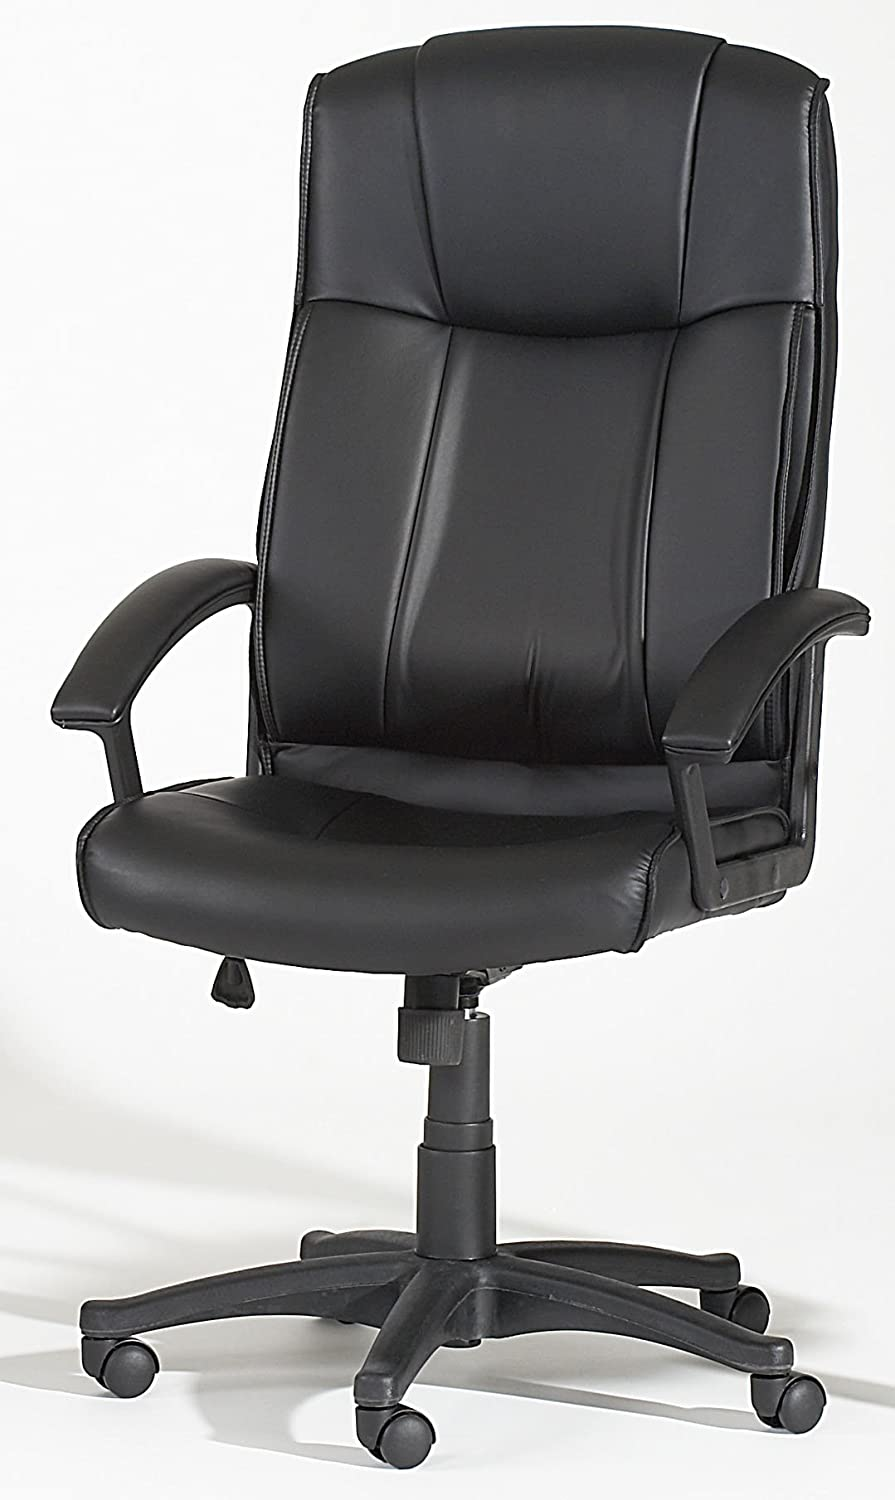 Milan Tabitha High Back Multi Adjustable Pneumatic Gas Lift Office Chair